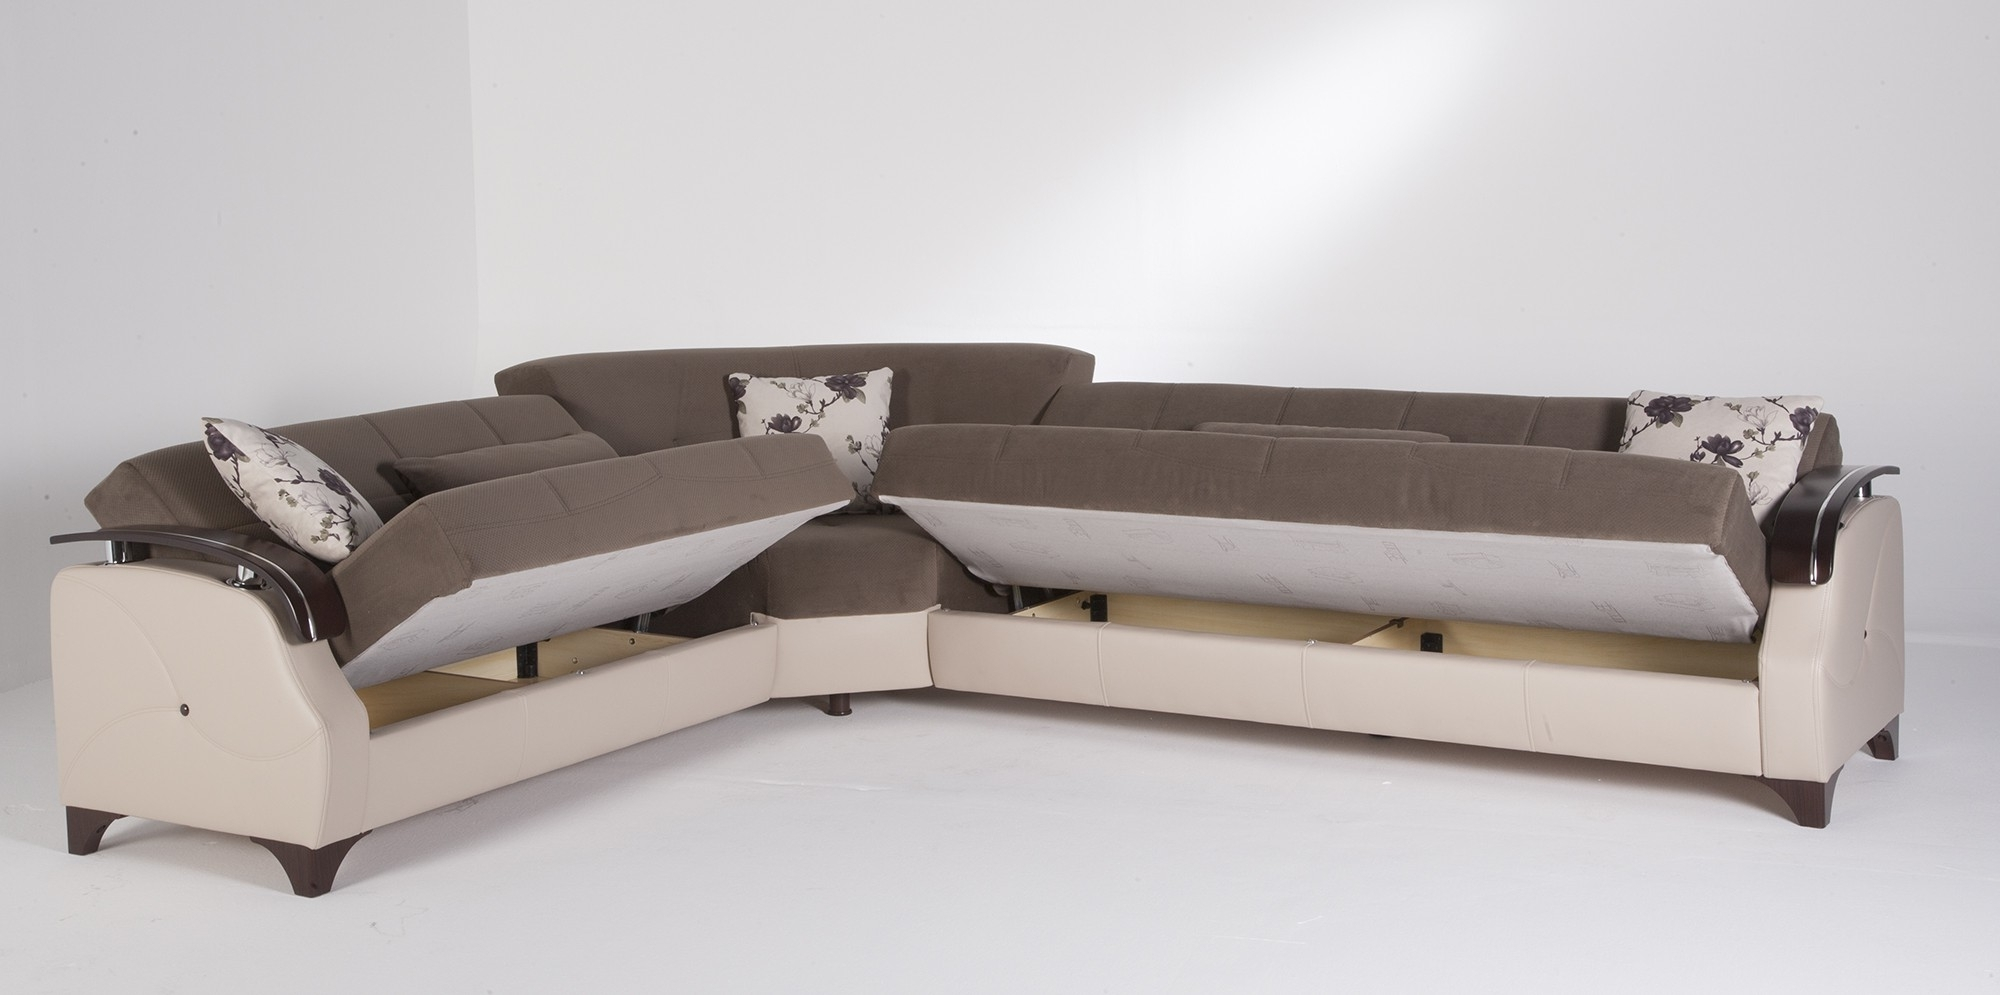 Best And Newest Sectional Sofa Design: Cheap Sectional Sofas Furniture Design Regarding L Shaped Sectional Sleeper Sofas (View 9 of 15)